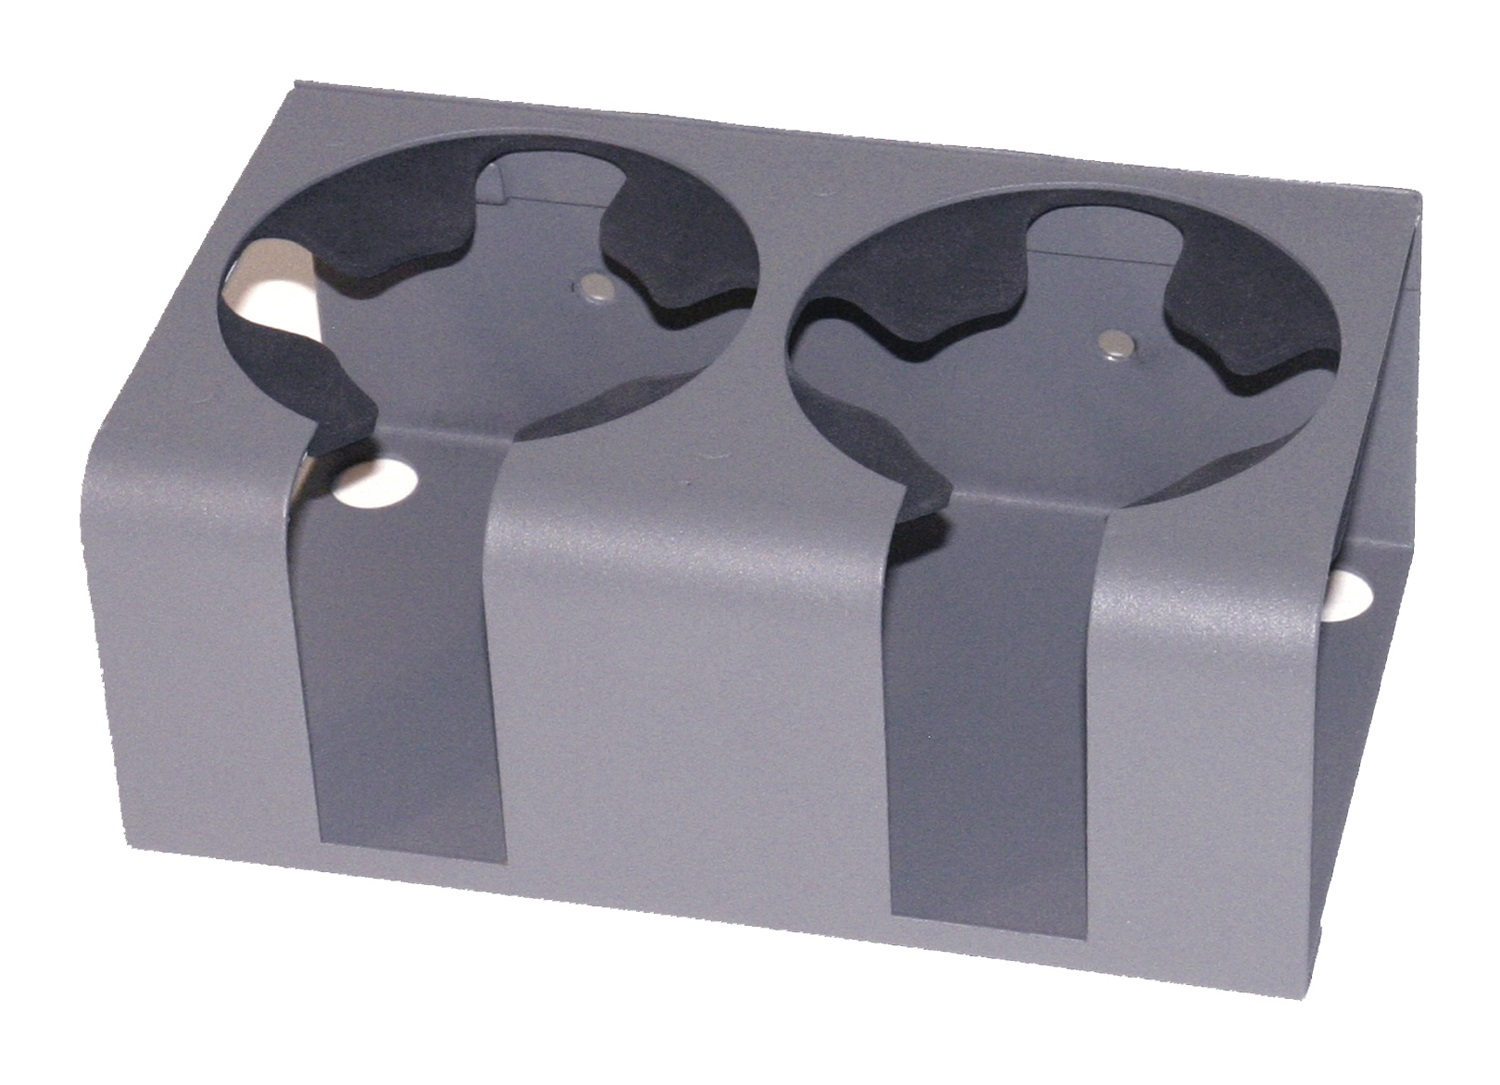 Tuffy Security Products 034-02 Drink Holder at Sears.com